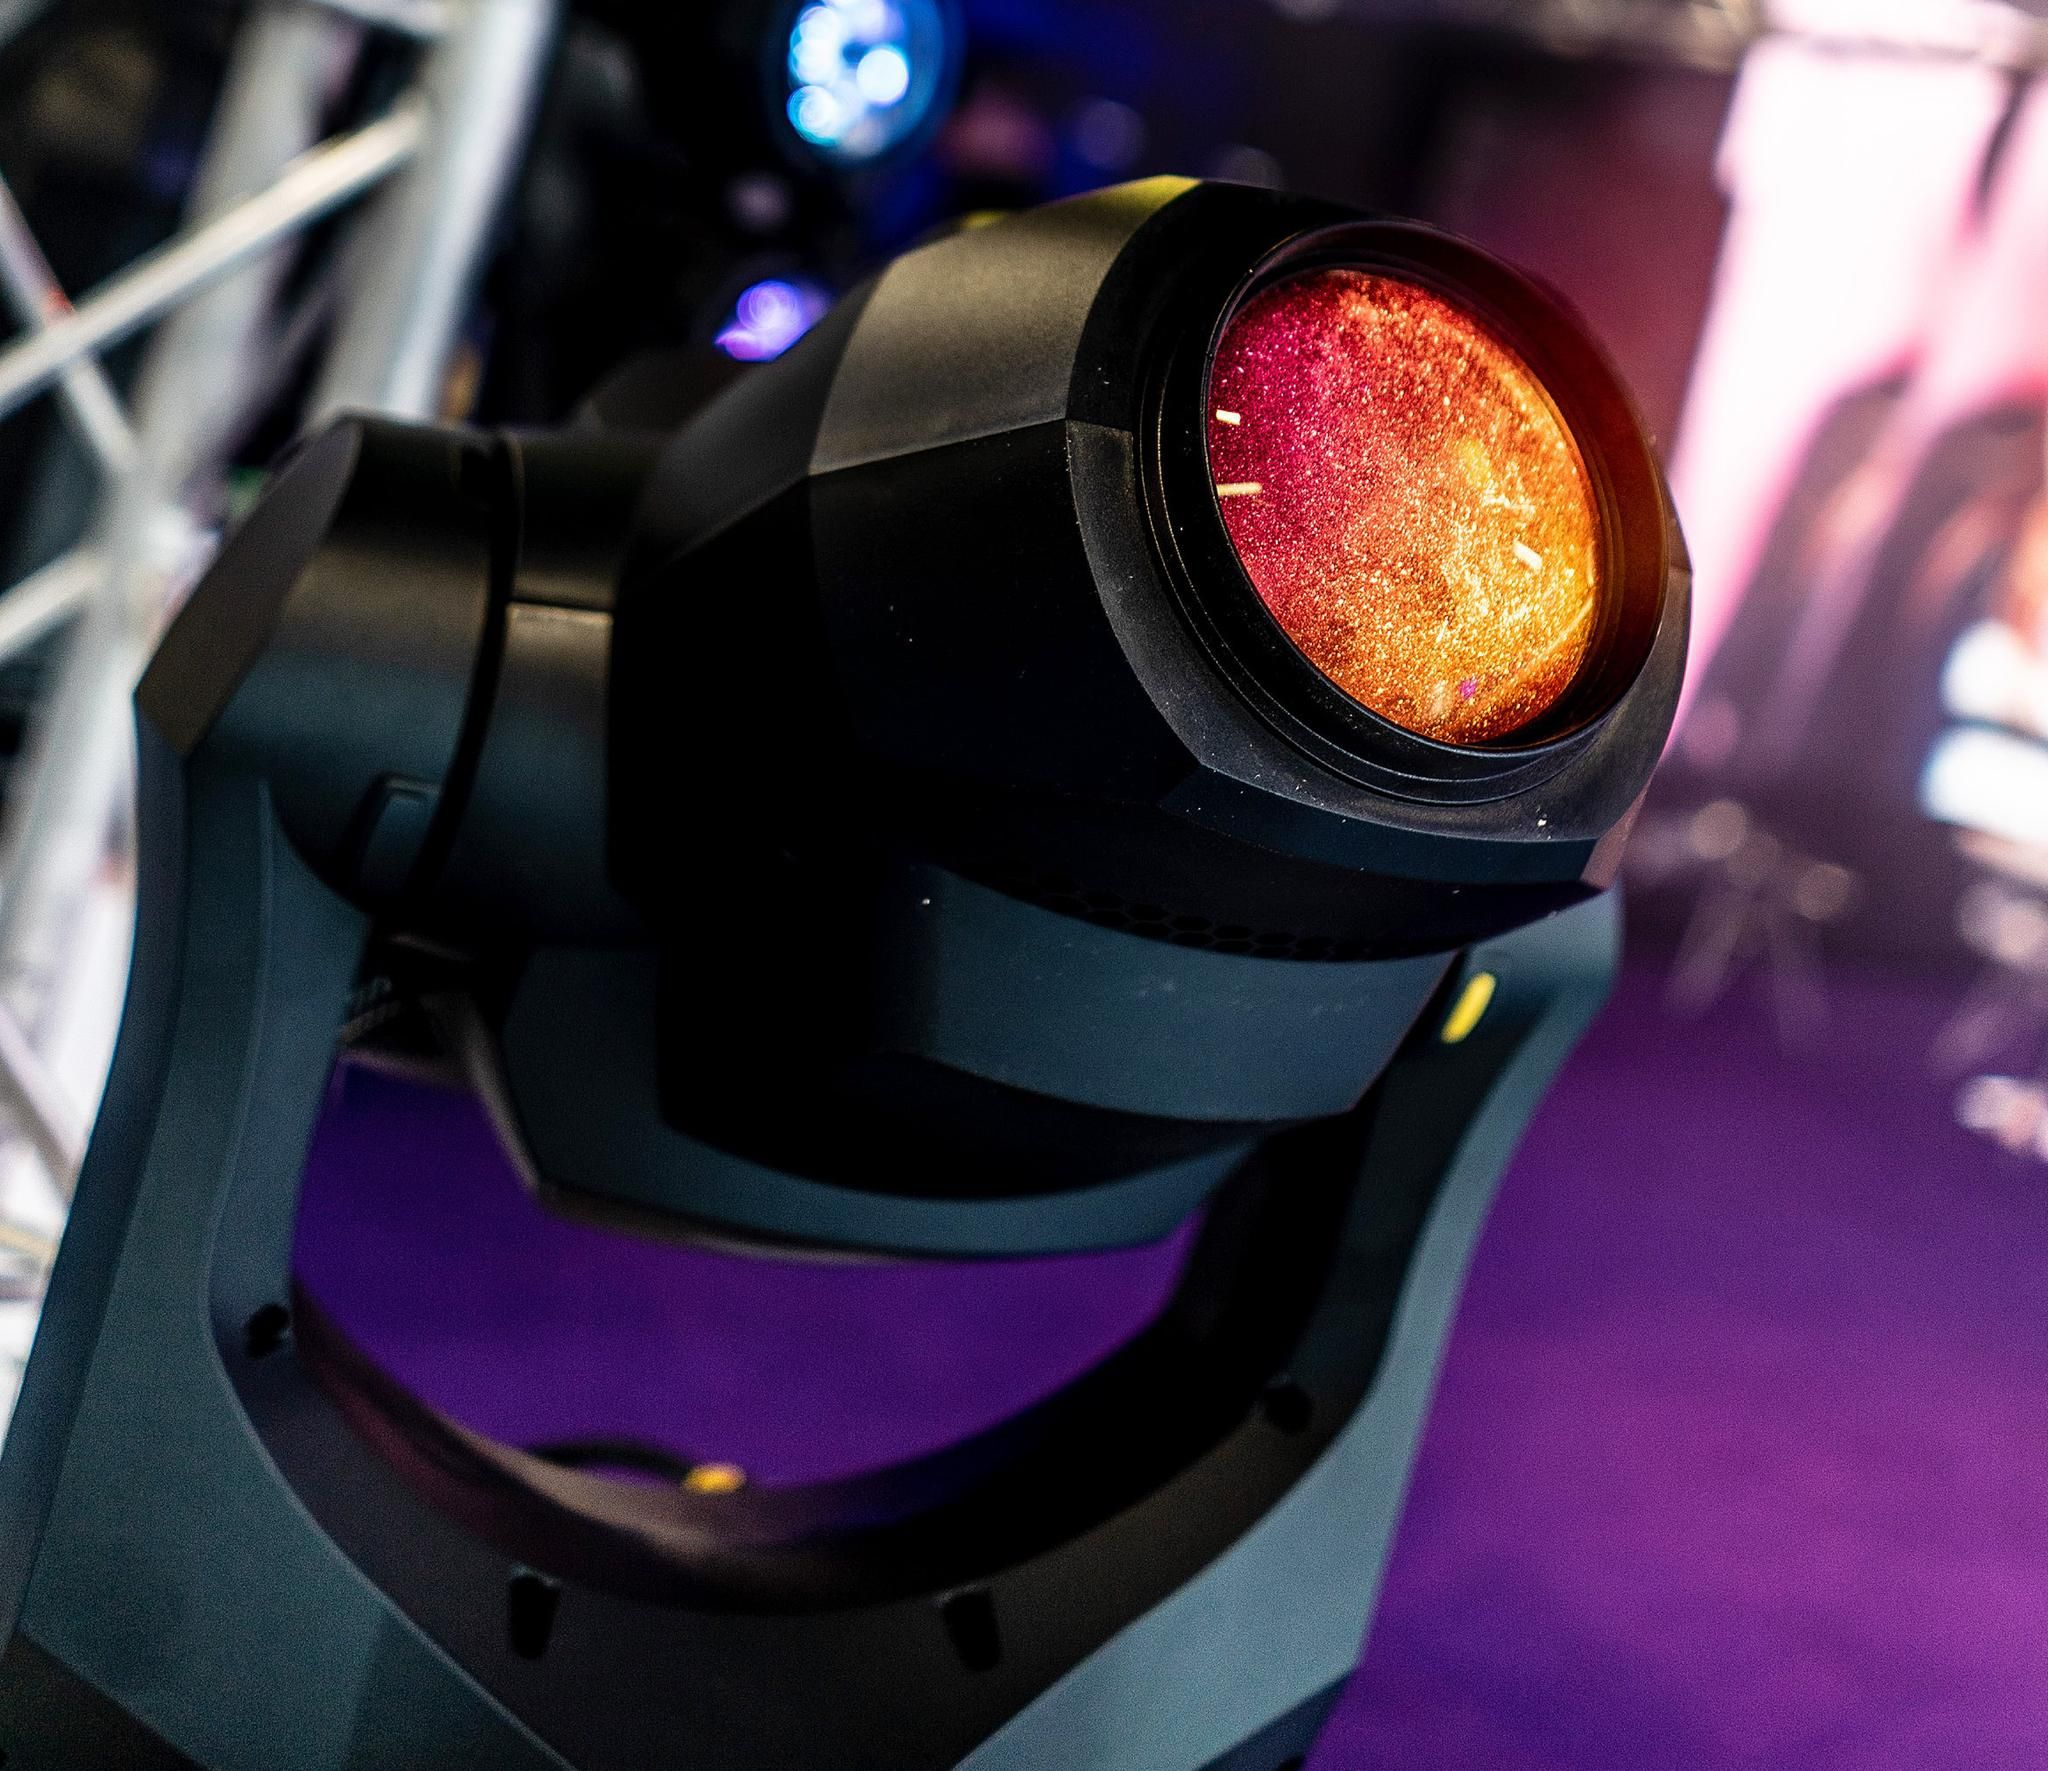 BOOK A STAND FOR PLASA SHOW 2021